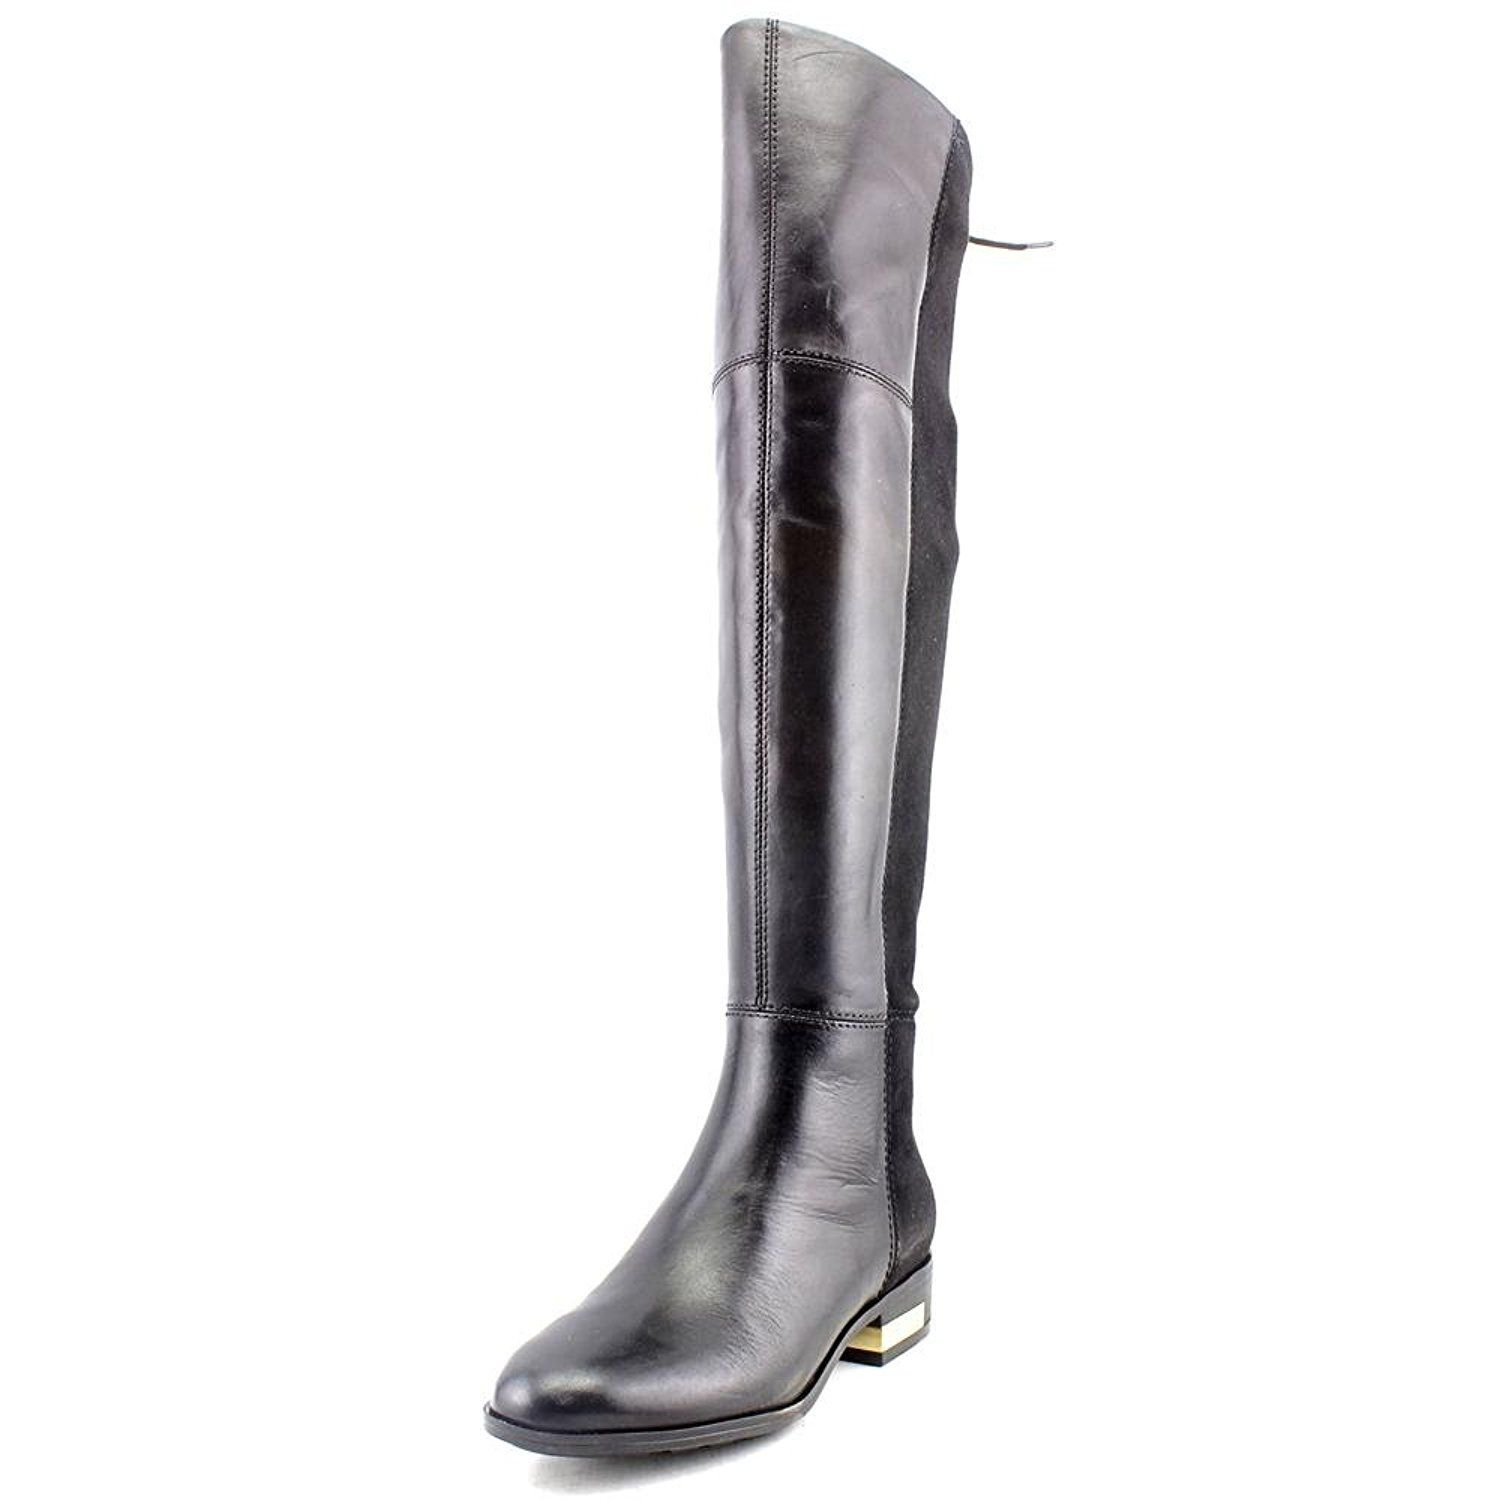 Guess Zoe Women Round Toe Leather Black Over The Knee Boot This Is An Amazon Aff Leather Over The Knee Boots Women S Over The Knee Boots Over The Knee Boots